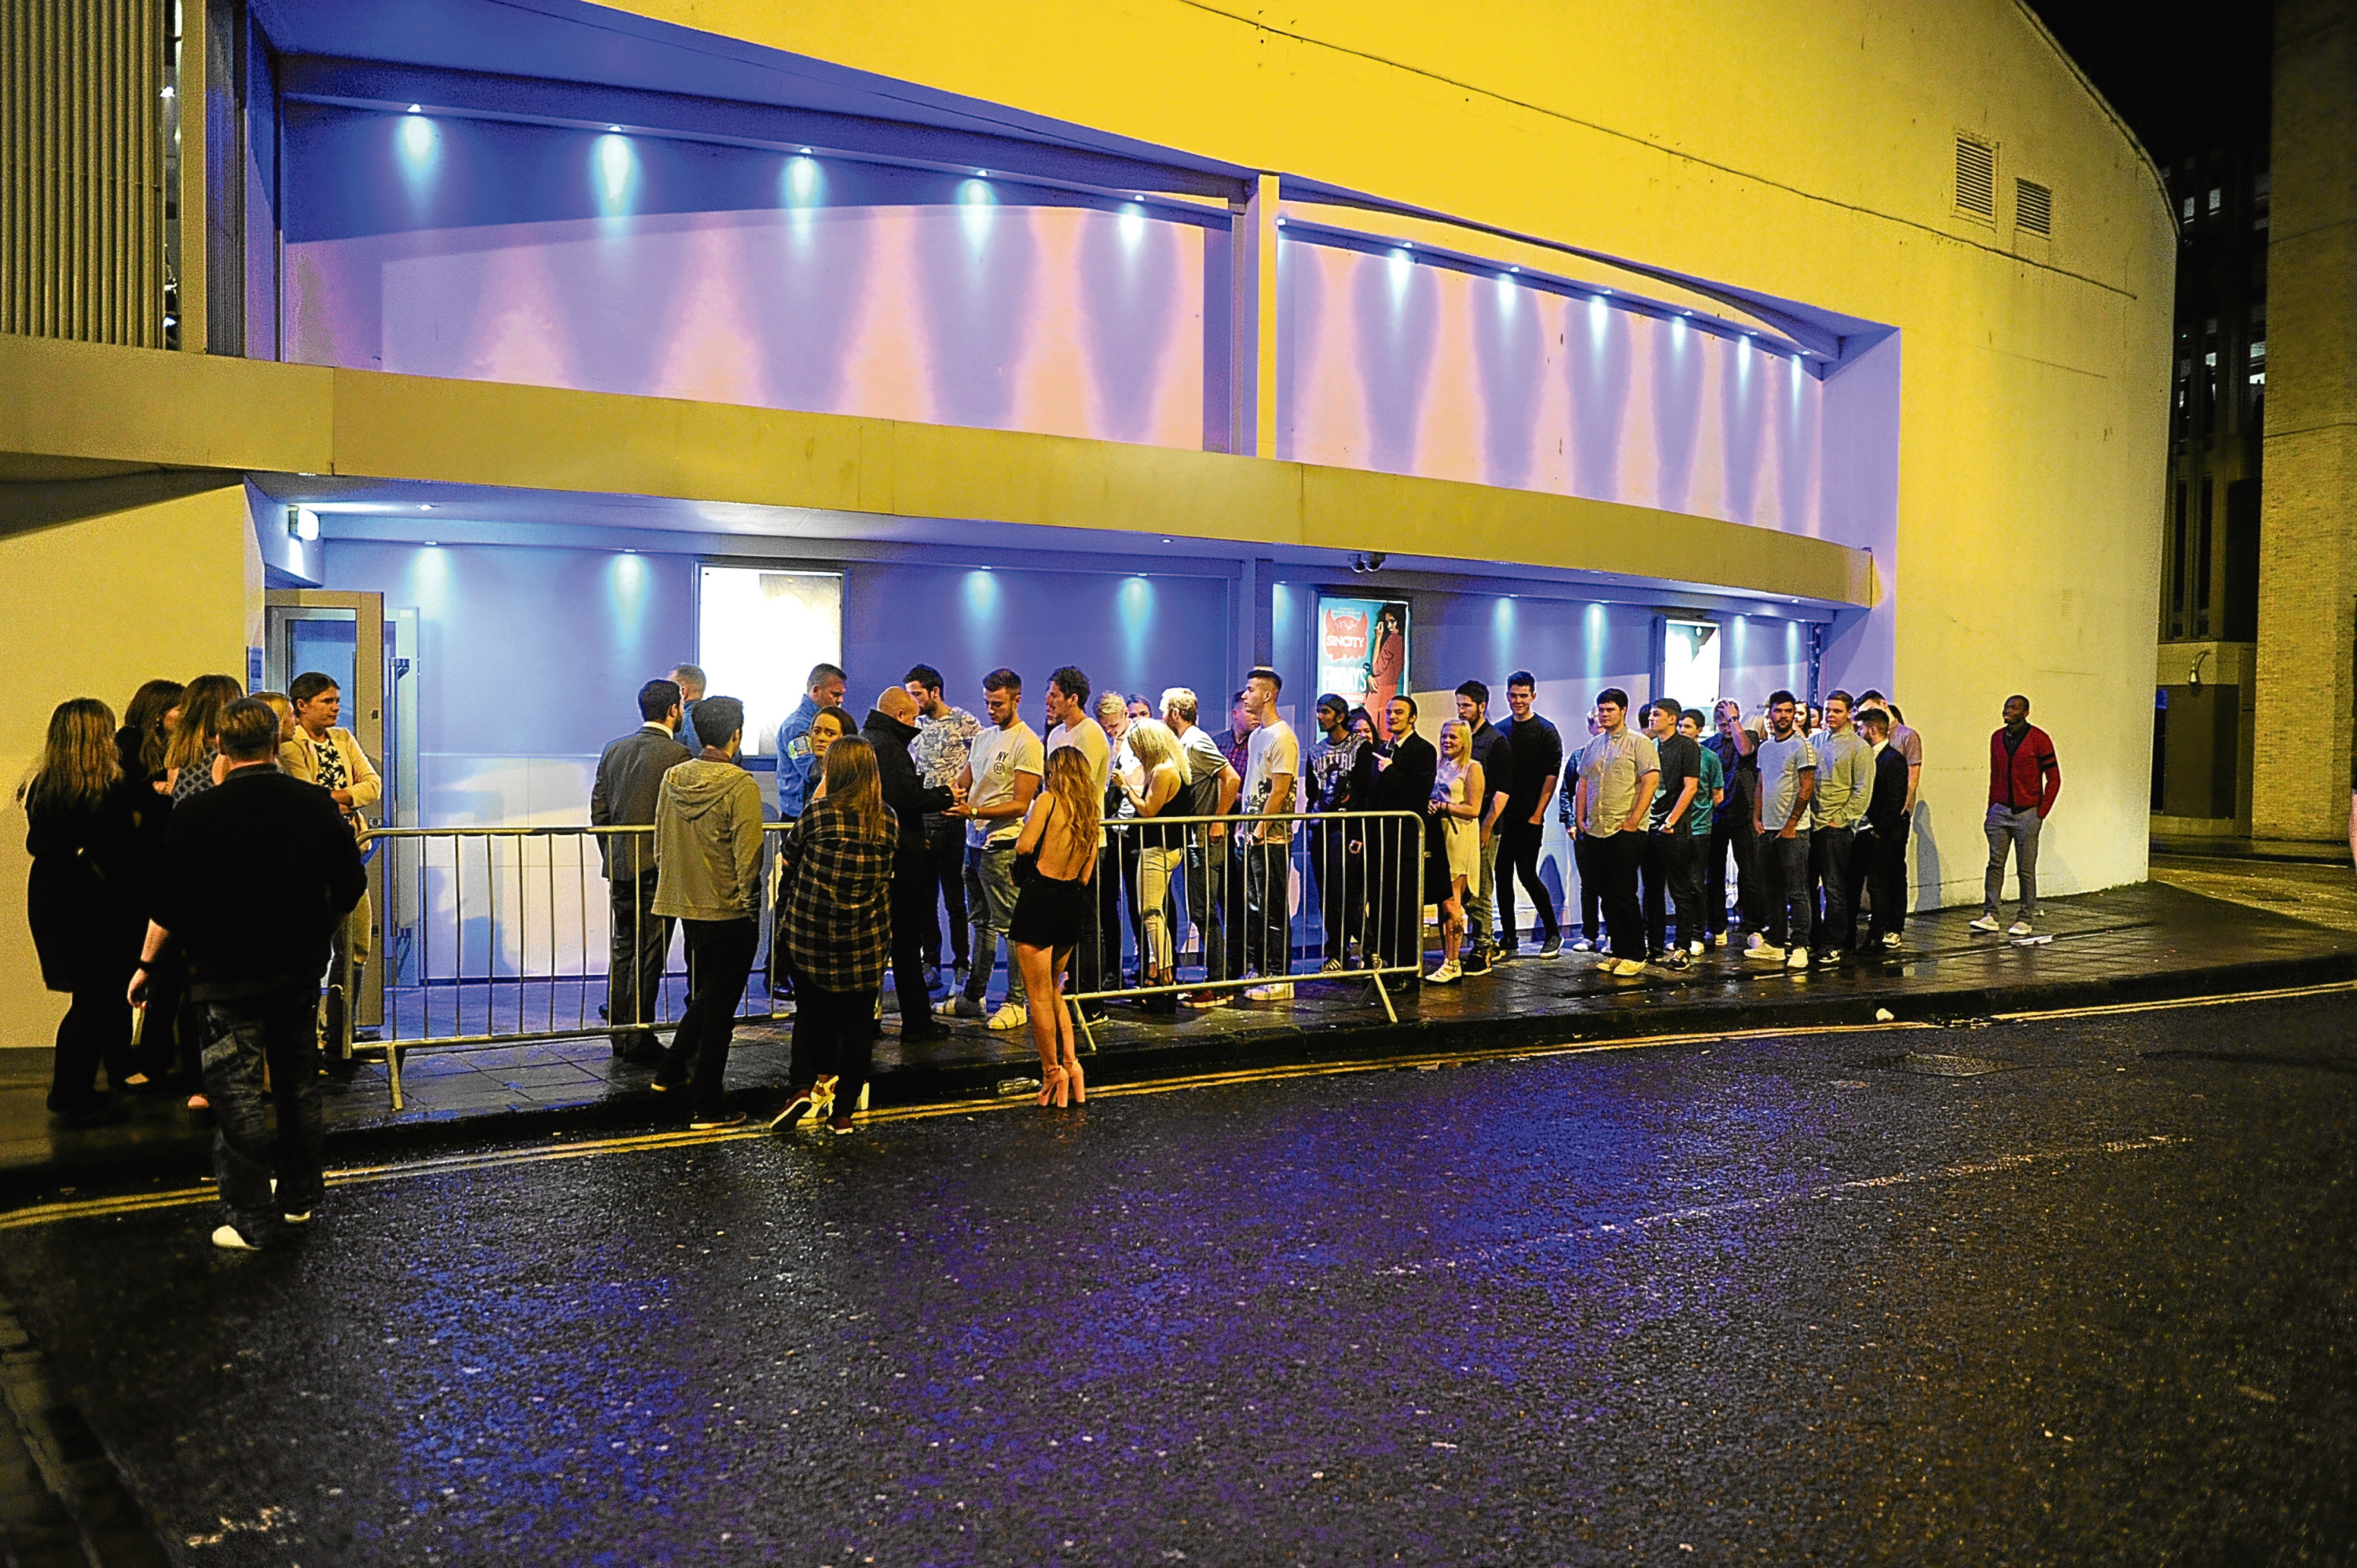 Revellers queue for Liquid nightclub. This week it was announced the venue was to shut down